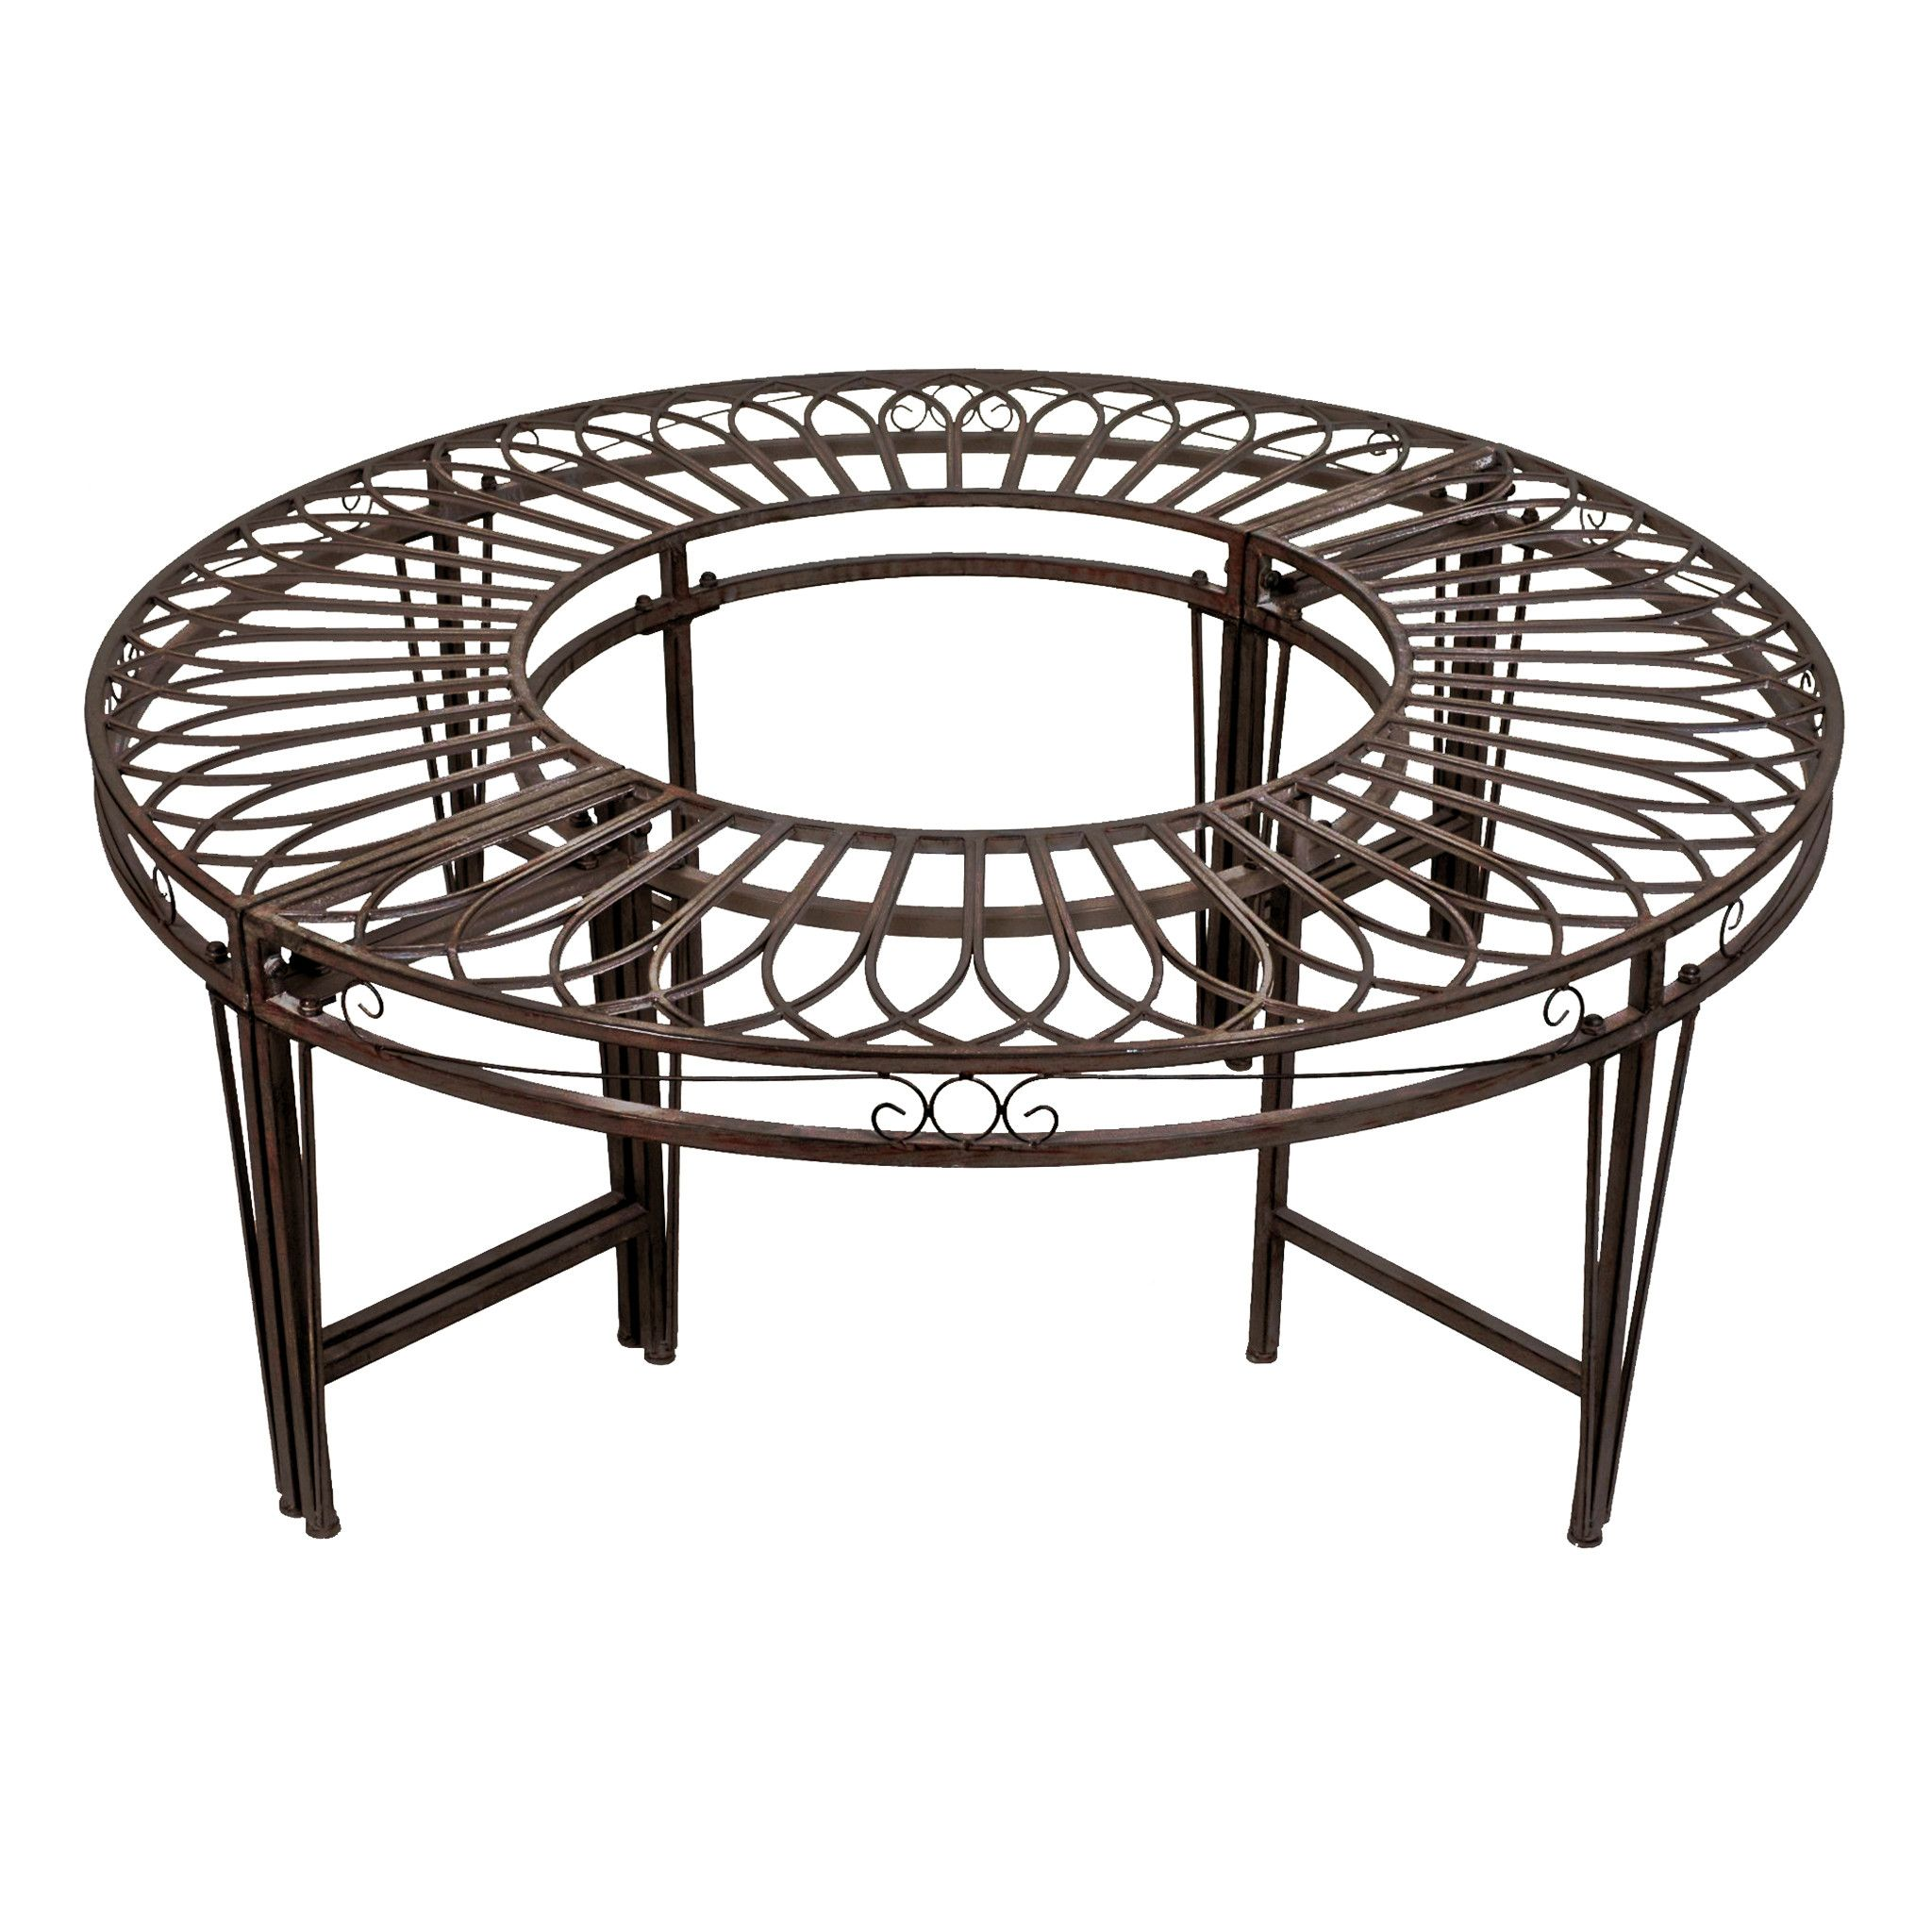 Gothic Roundabout Steel Garden Bench  Benches for sale, Design